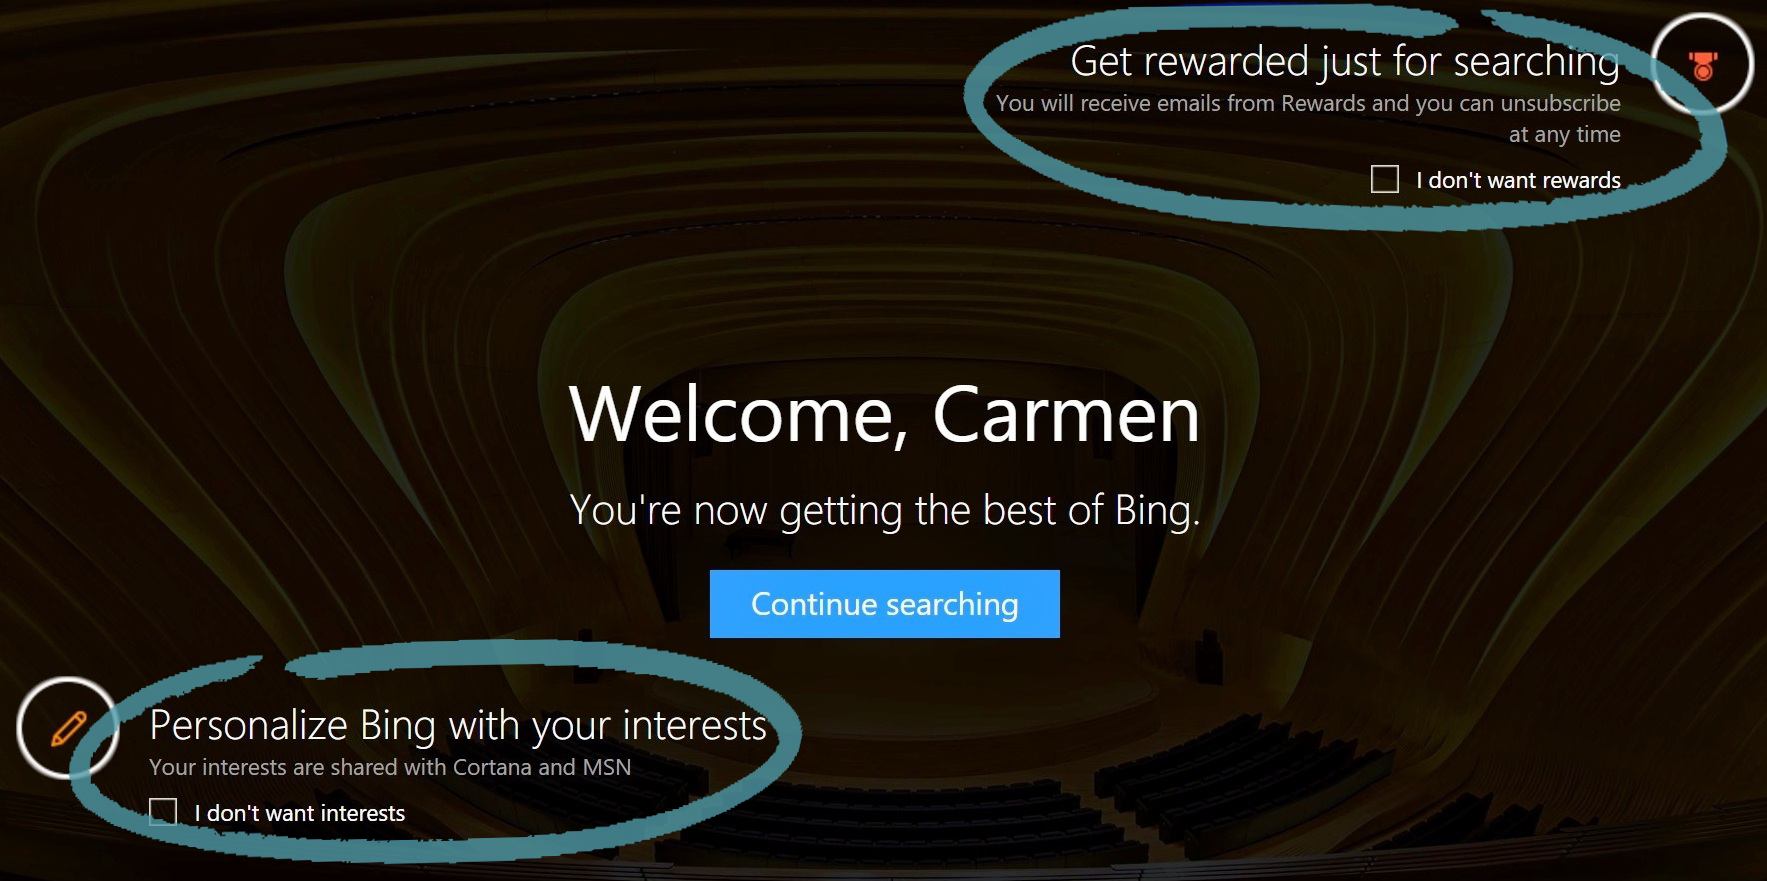 Bing homepage with Rewards and Interests opt-ins